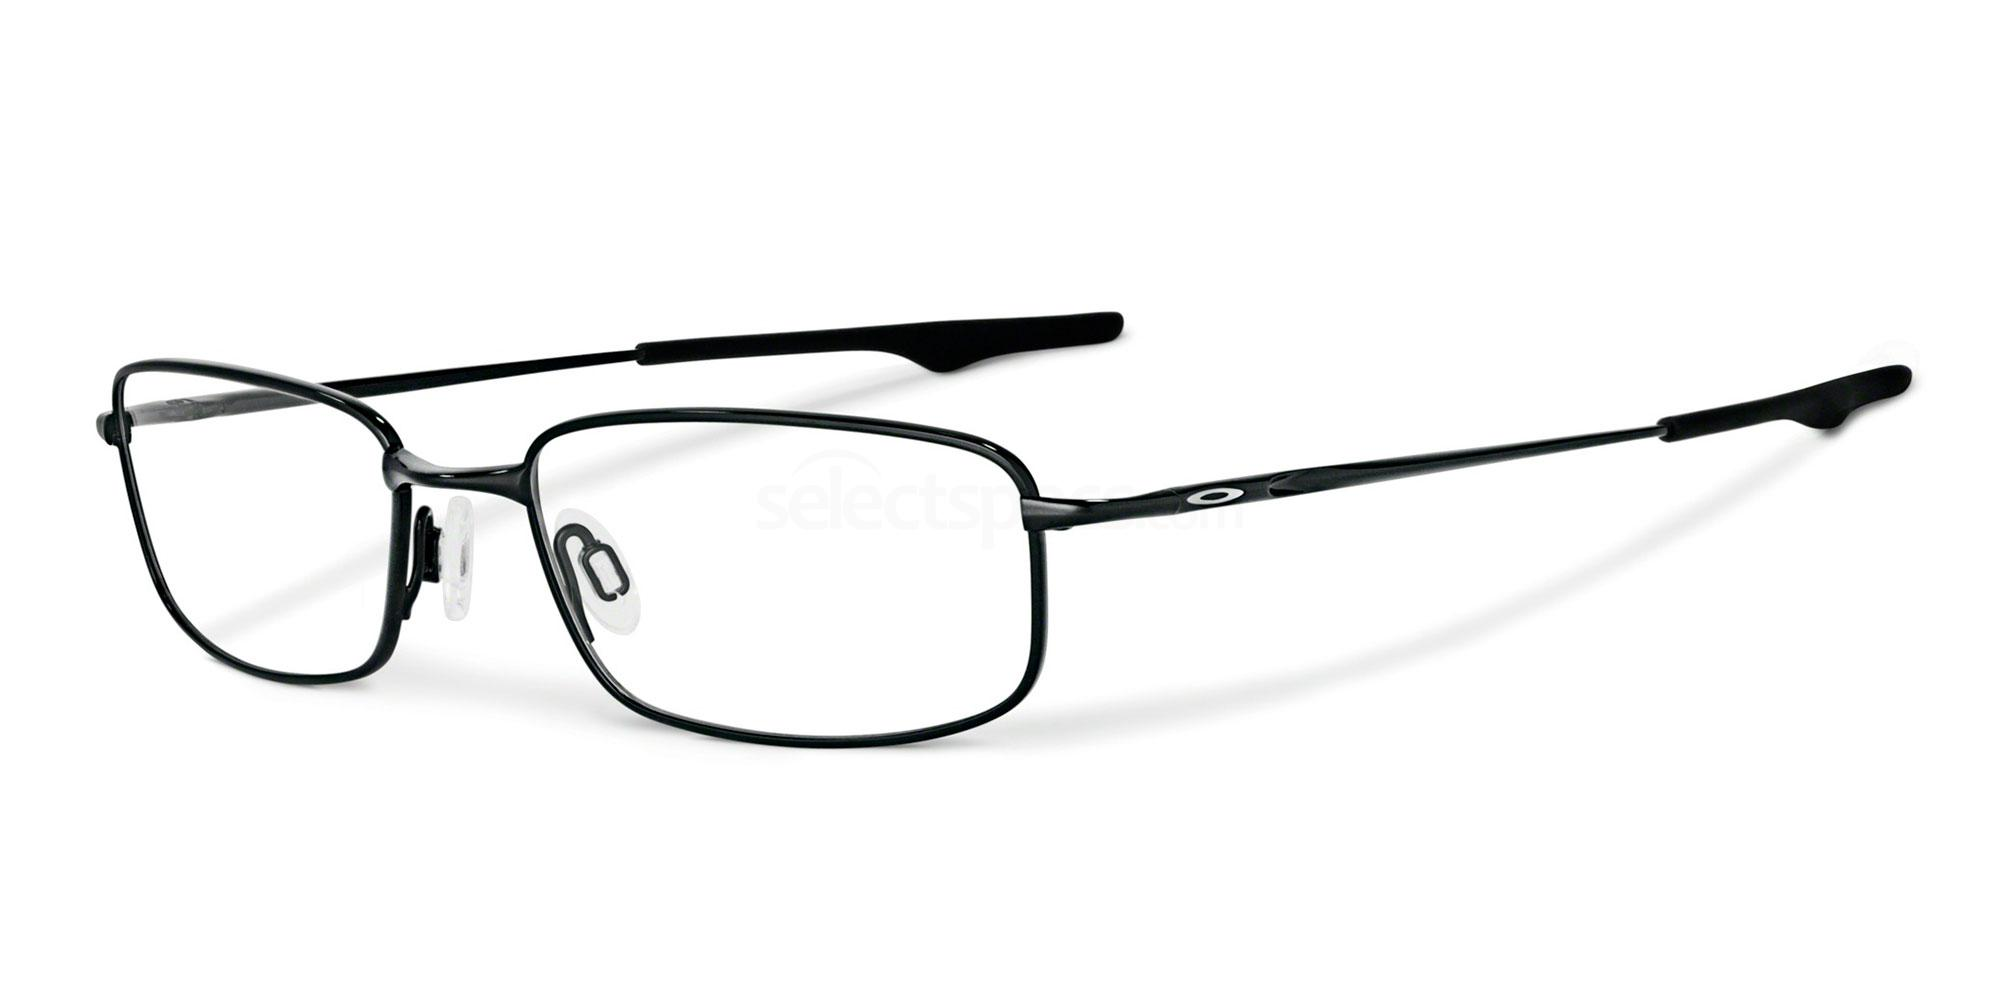 312501 OX3125 KEEL BLADE Glasses, Oakley